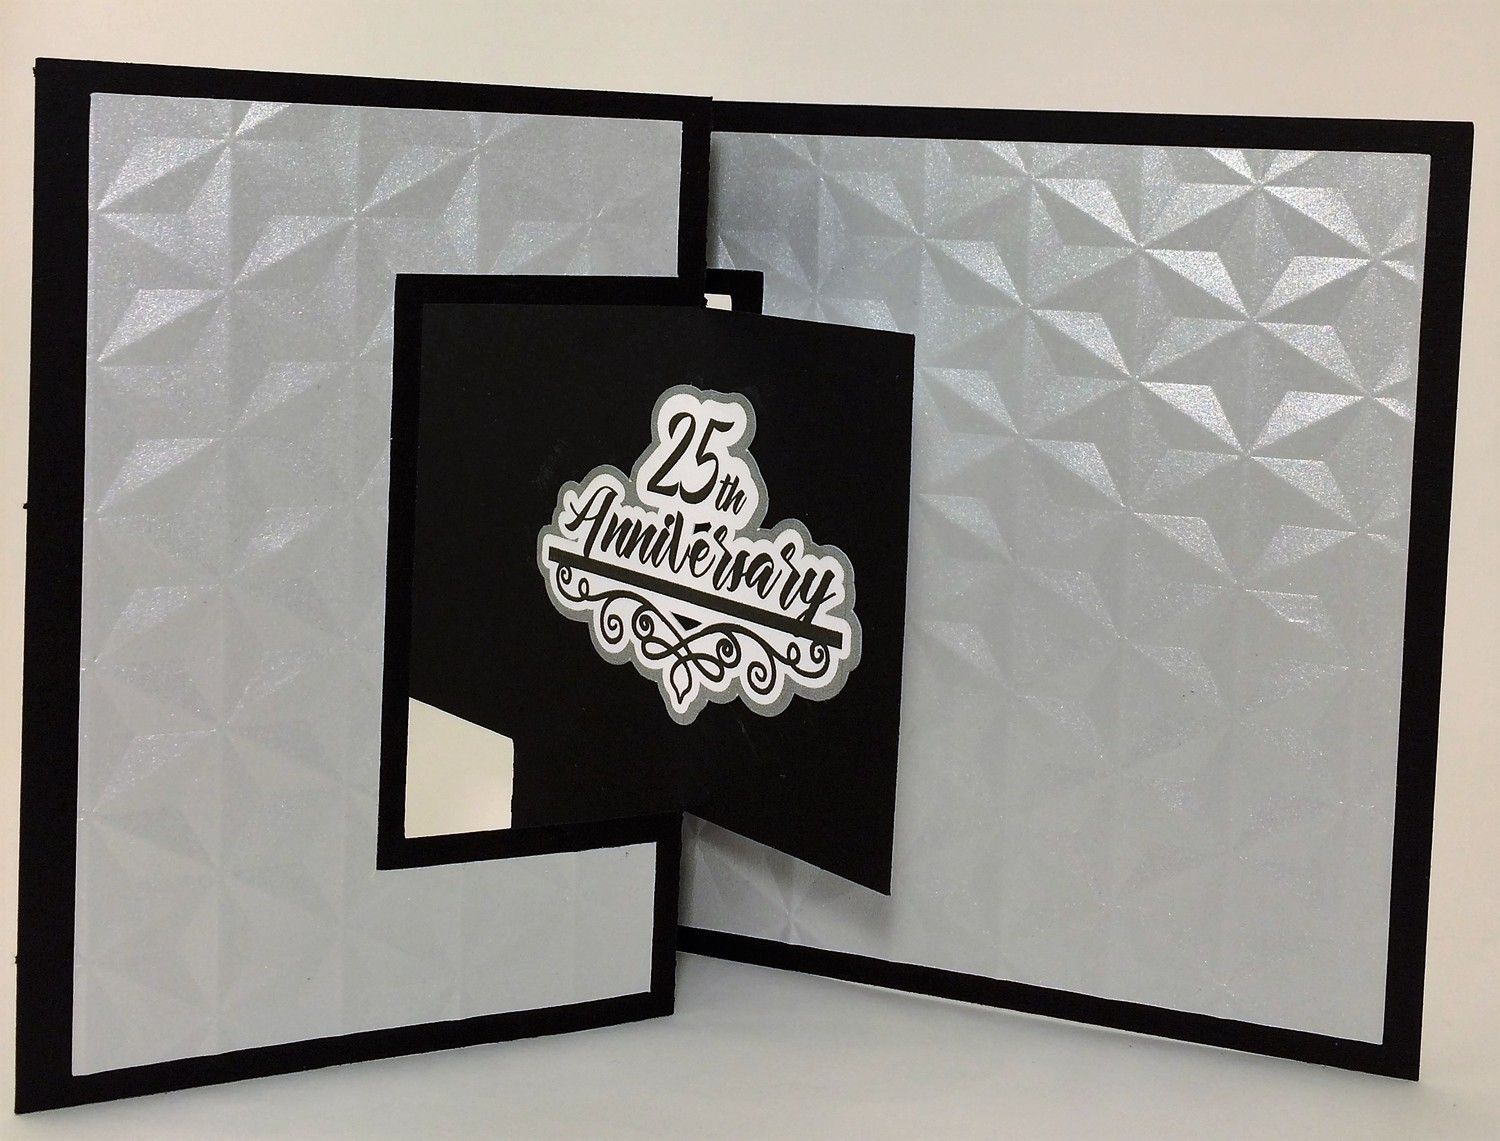 25th Anniversary with Gift Card enclosure